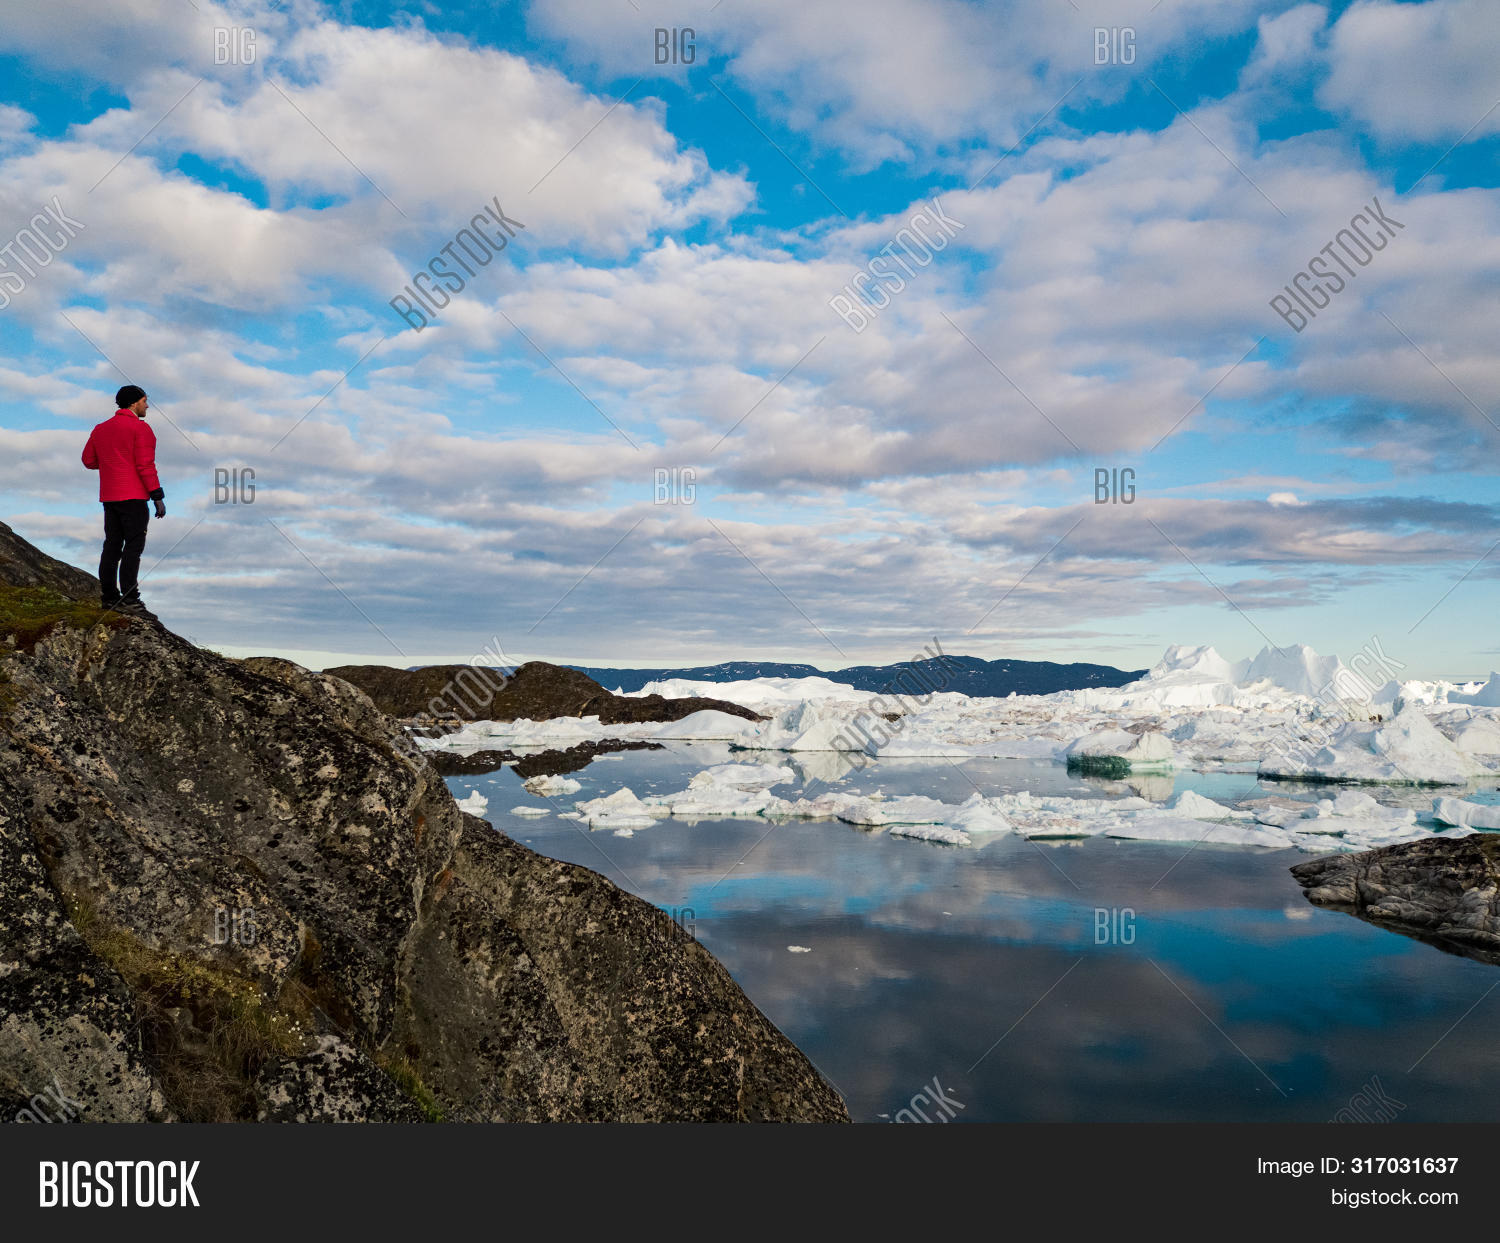 adventure,aerial,arctic,change,climate,climate change,cold,destination,environment,fjord,floating,floe,giant,glacier,global,global warming,greenland,hiking,ice,iceberg,icebergs,icefjord,ilulissat,jakobshavn,landscape,looking,man,melting,nature,north,ocean,outdoors,person,polar,researcher,scientist,sea,standing,summer,tourism,tourist,tourists,travel,traveler,view,warming,water,white